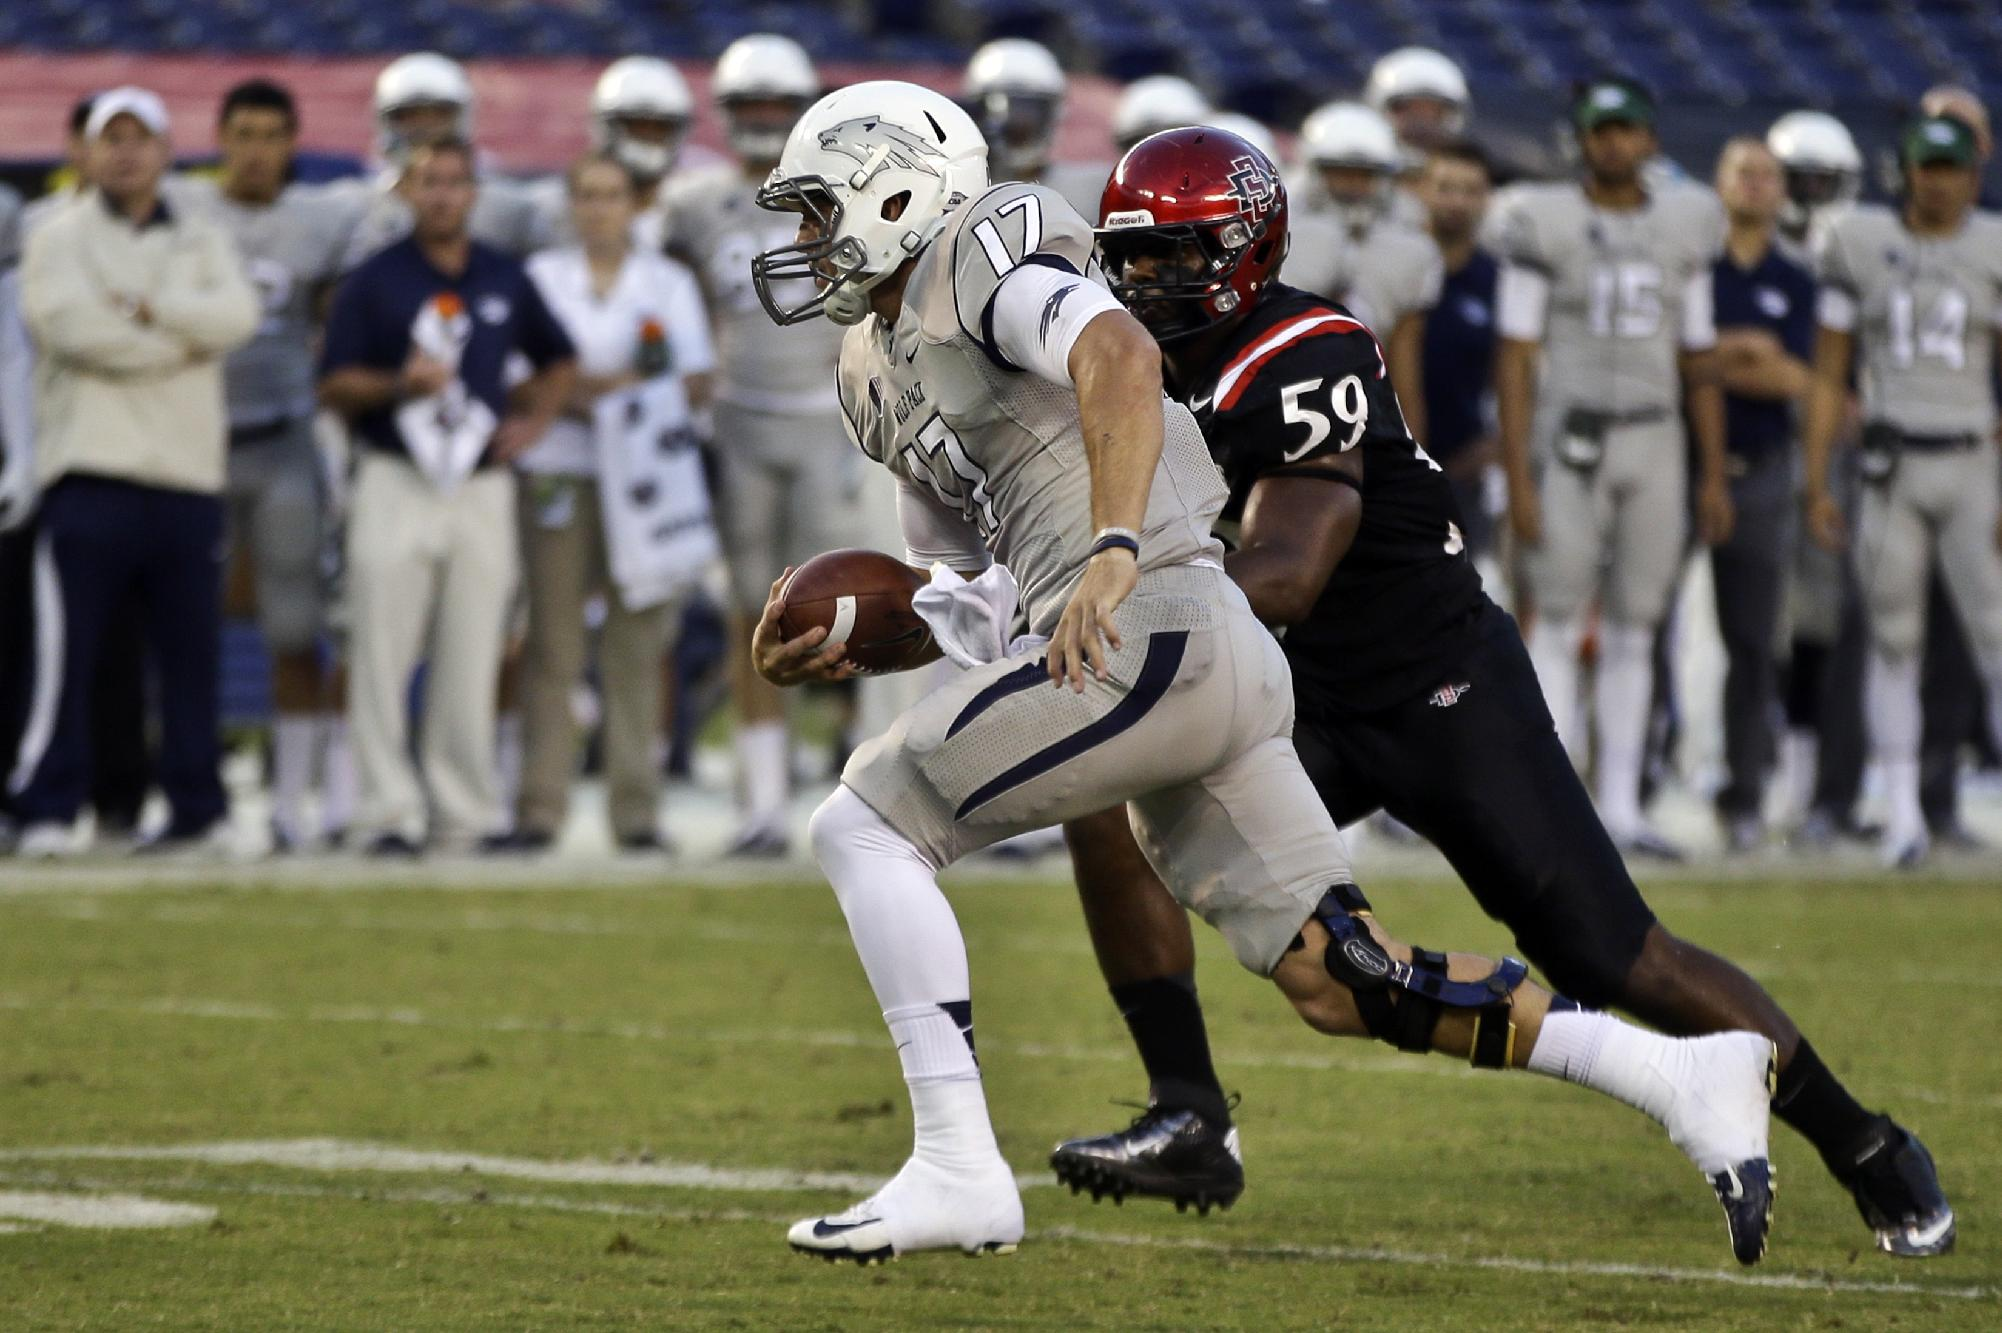 Nevada quarterback Cody Fajardo (17) outruns San Diego State defender Jordan Thomas for a first down during the second quarter of an NCAA college football game on Friday, Oct. 4, 2013, in San Diego